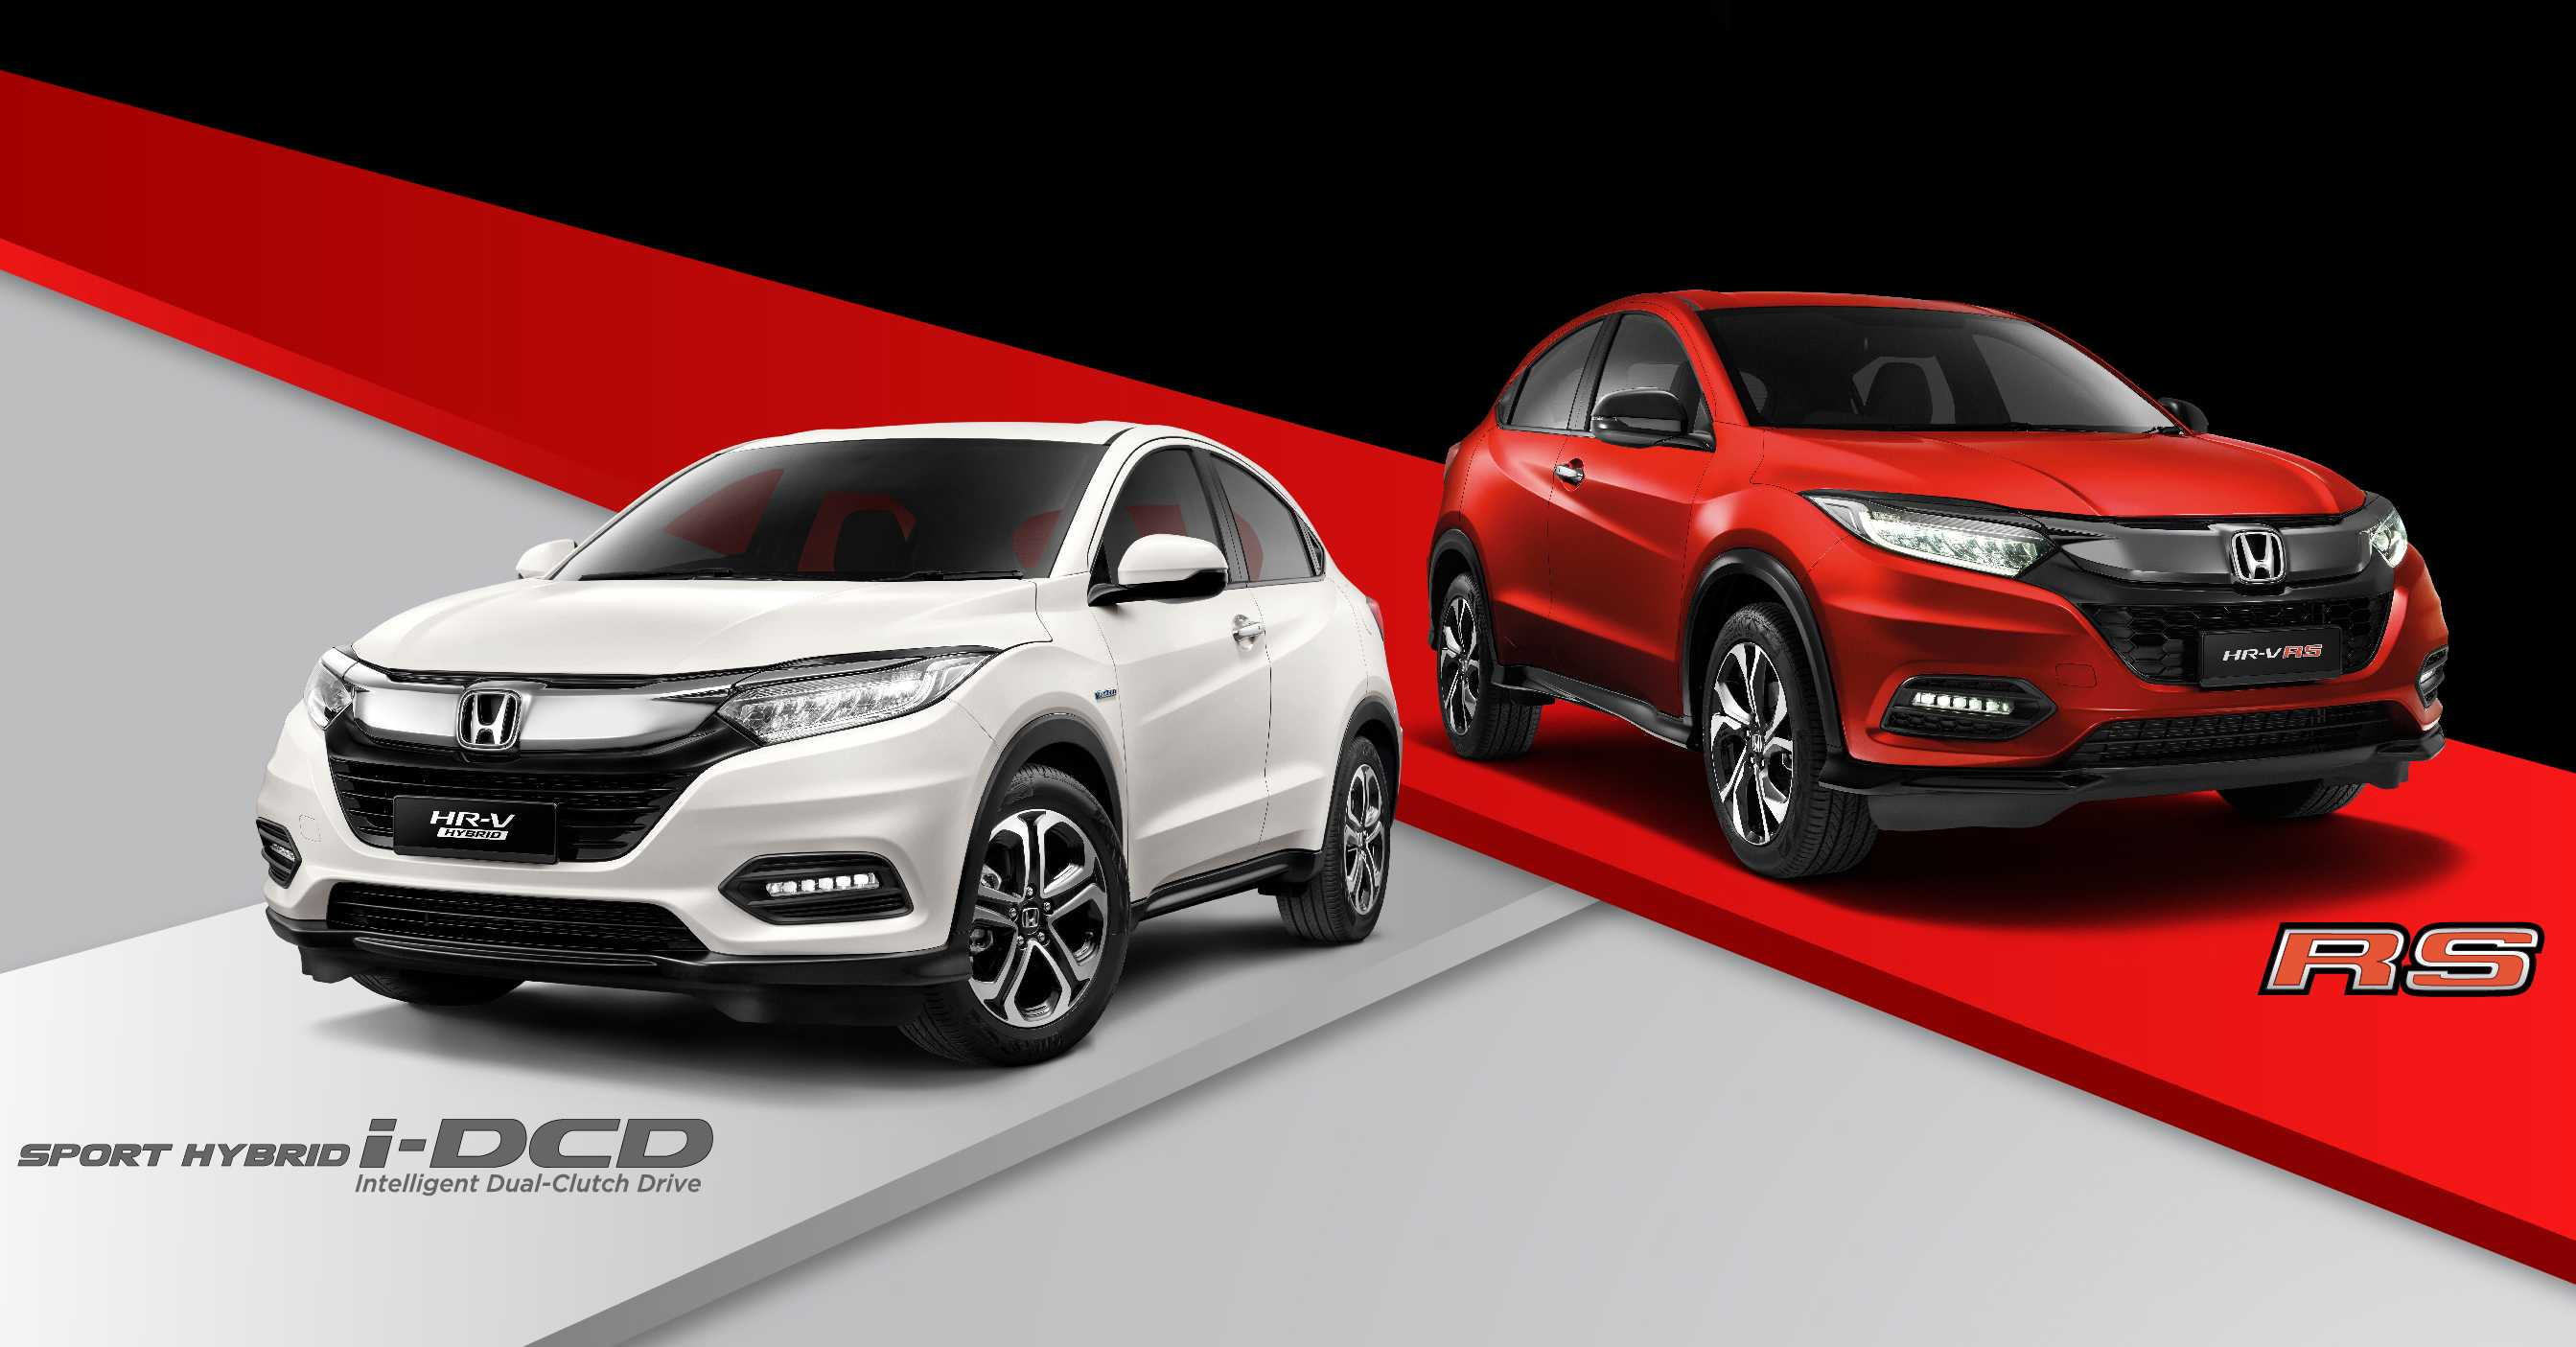 2021 Honda HR-V Gets Upgraded with iOS and Android Connectivity